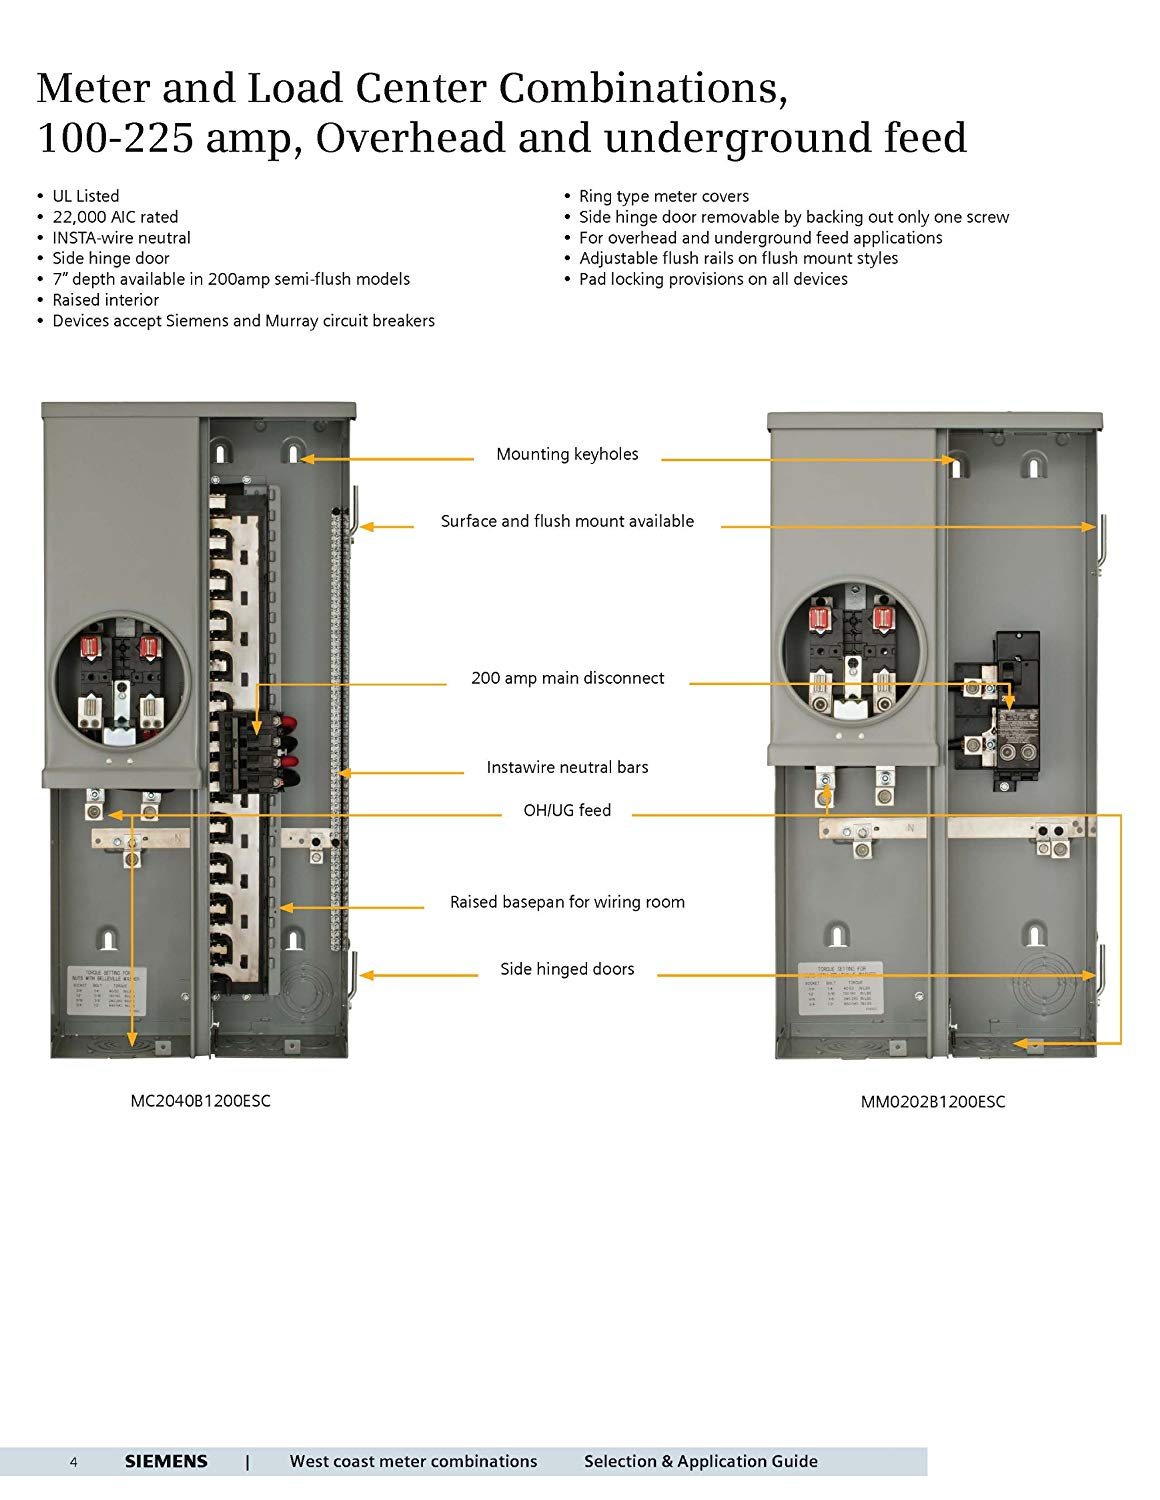 Murray 200 Amp Wiring Diagram -1986 Chevy Truck Fuse Block Diagram |  Begeboy Wiring Diagram Source | Murray 200 Amp Wiring Diagram |  | Begeboy Wiring Diagram Source